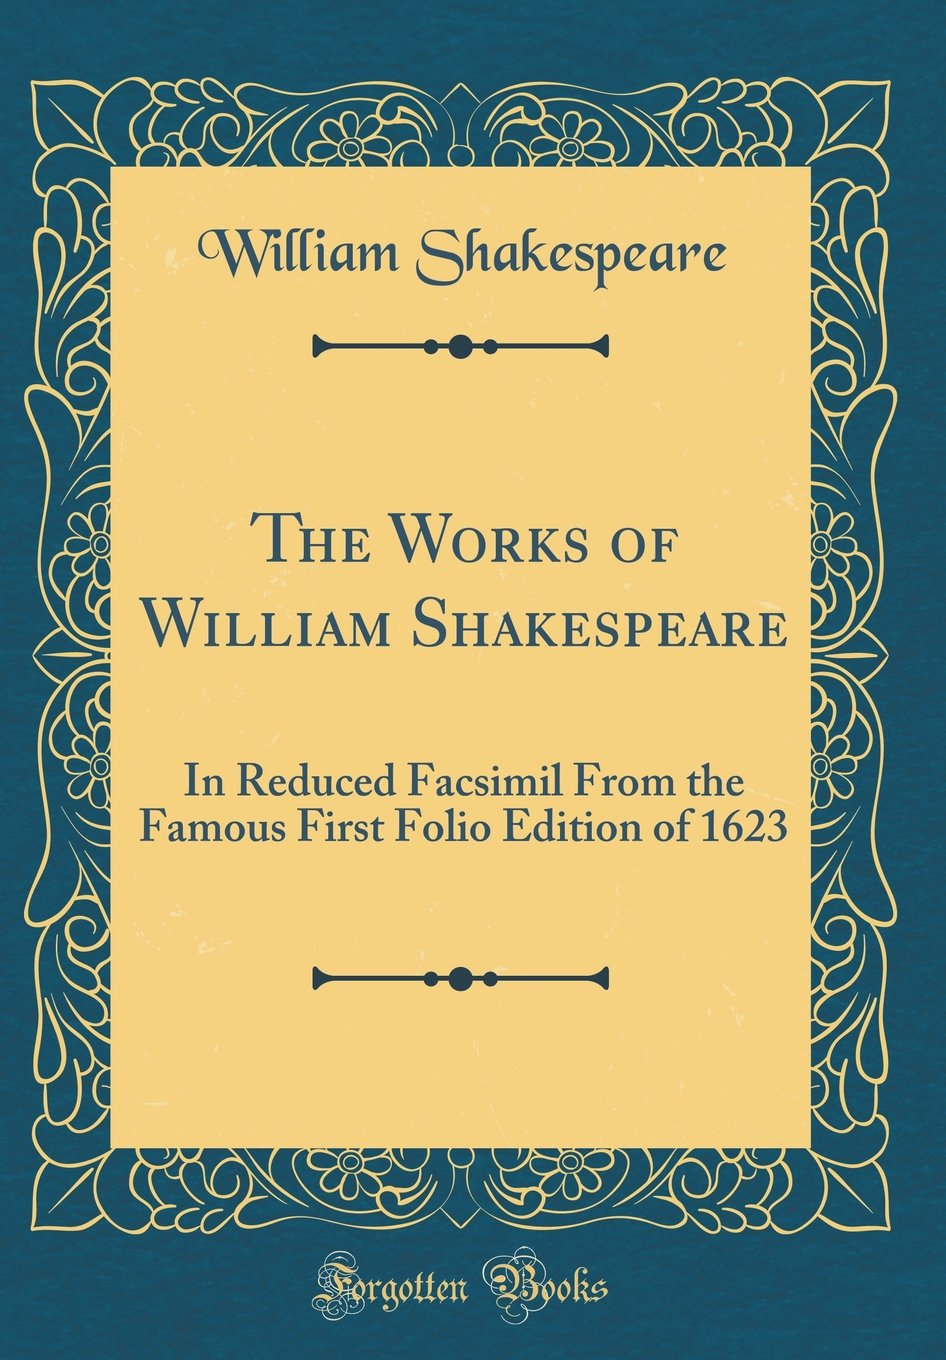 The Works of William Shakespeare: In Reduced Facsimil From the Famous First Folio Edition of 1623 (Classic Reprint)